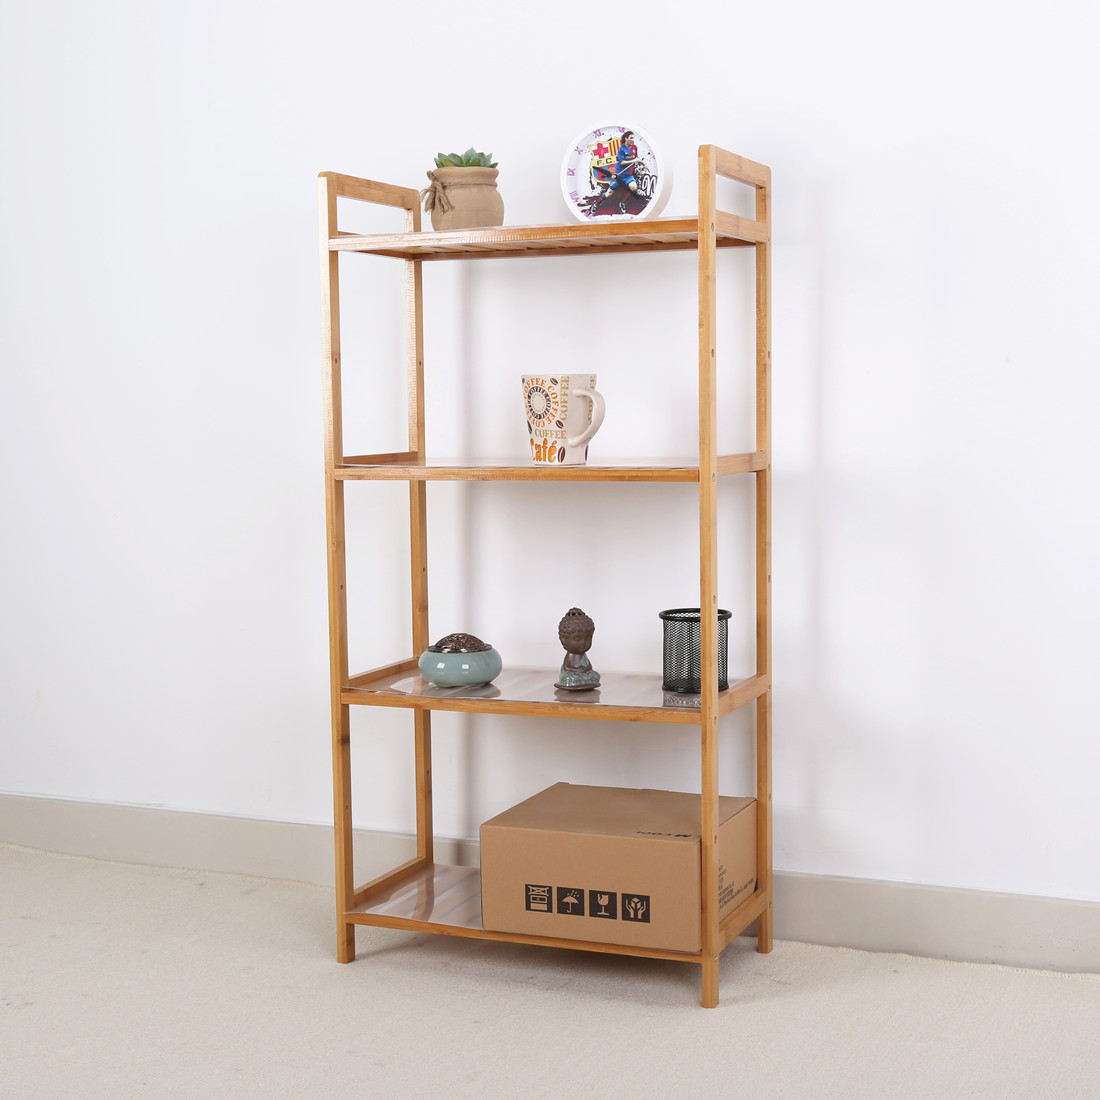 Simple bedside frame, dormitory accommodation, small shelf, bedroom storage rack, mini